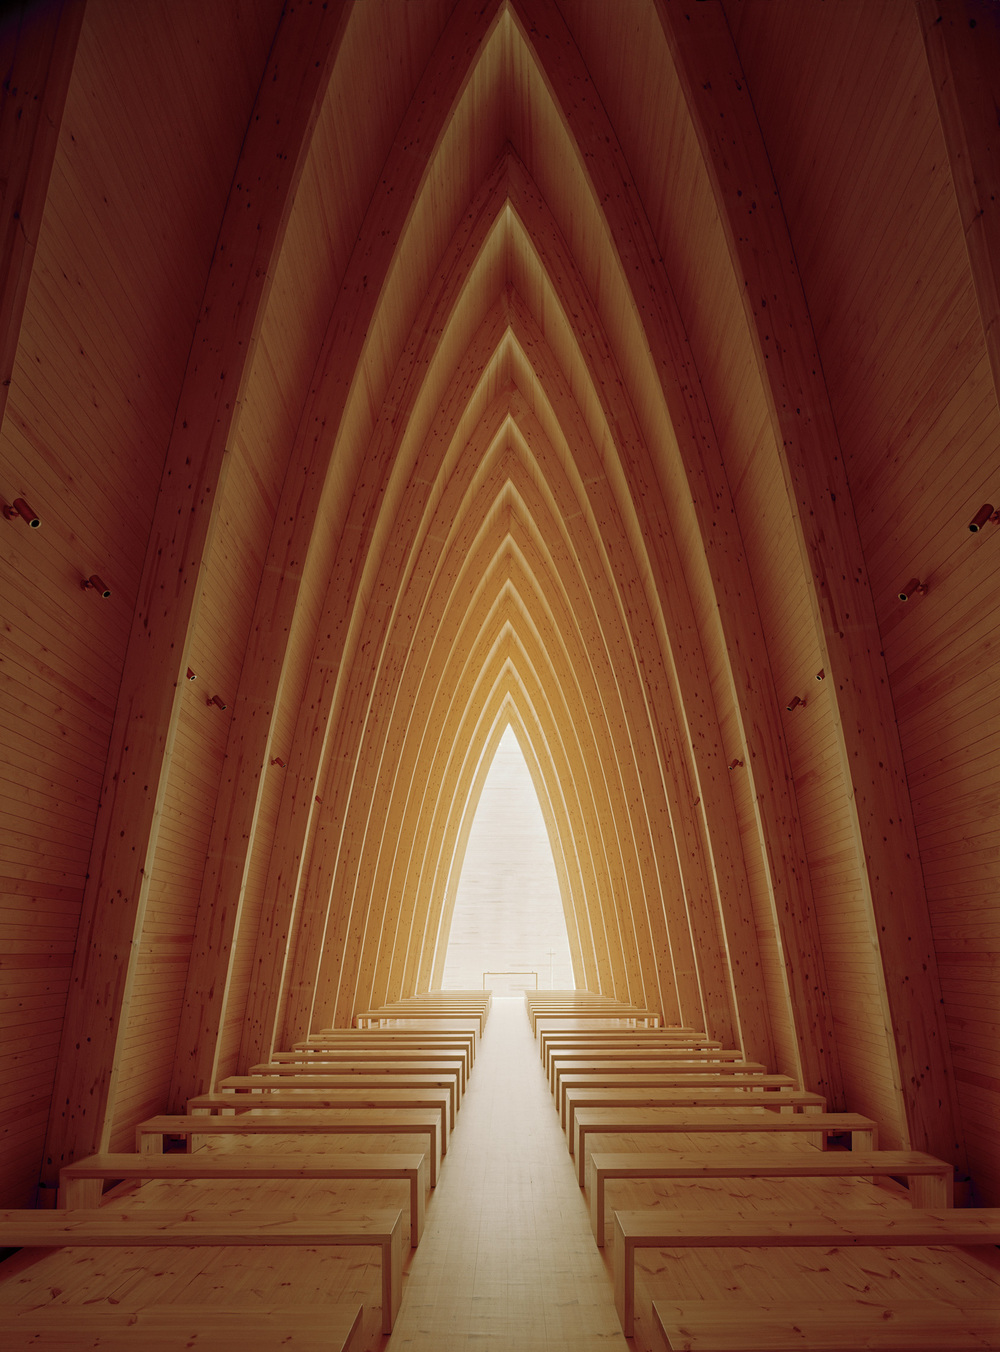 Sanaksenaho Architects: Turku Ecumenical Art Chapel designed 1996-99, built 2005. Photo: Jussi Tiainen